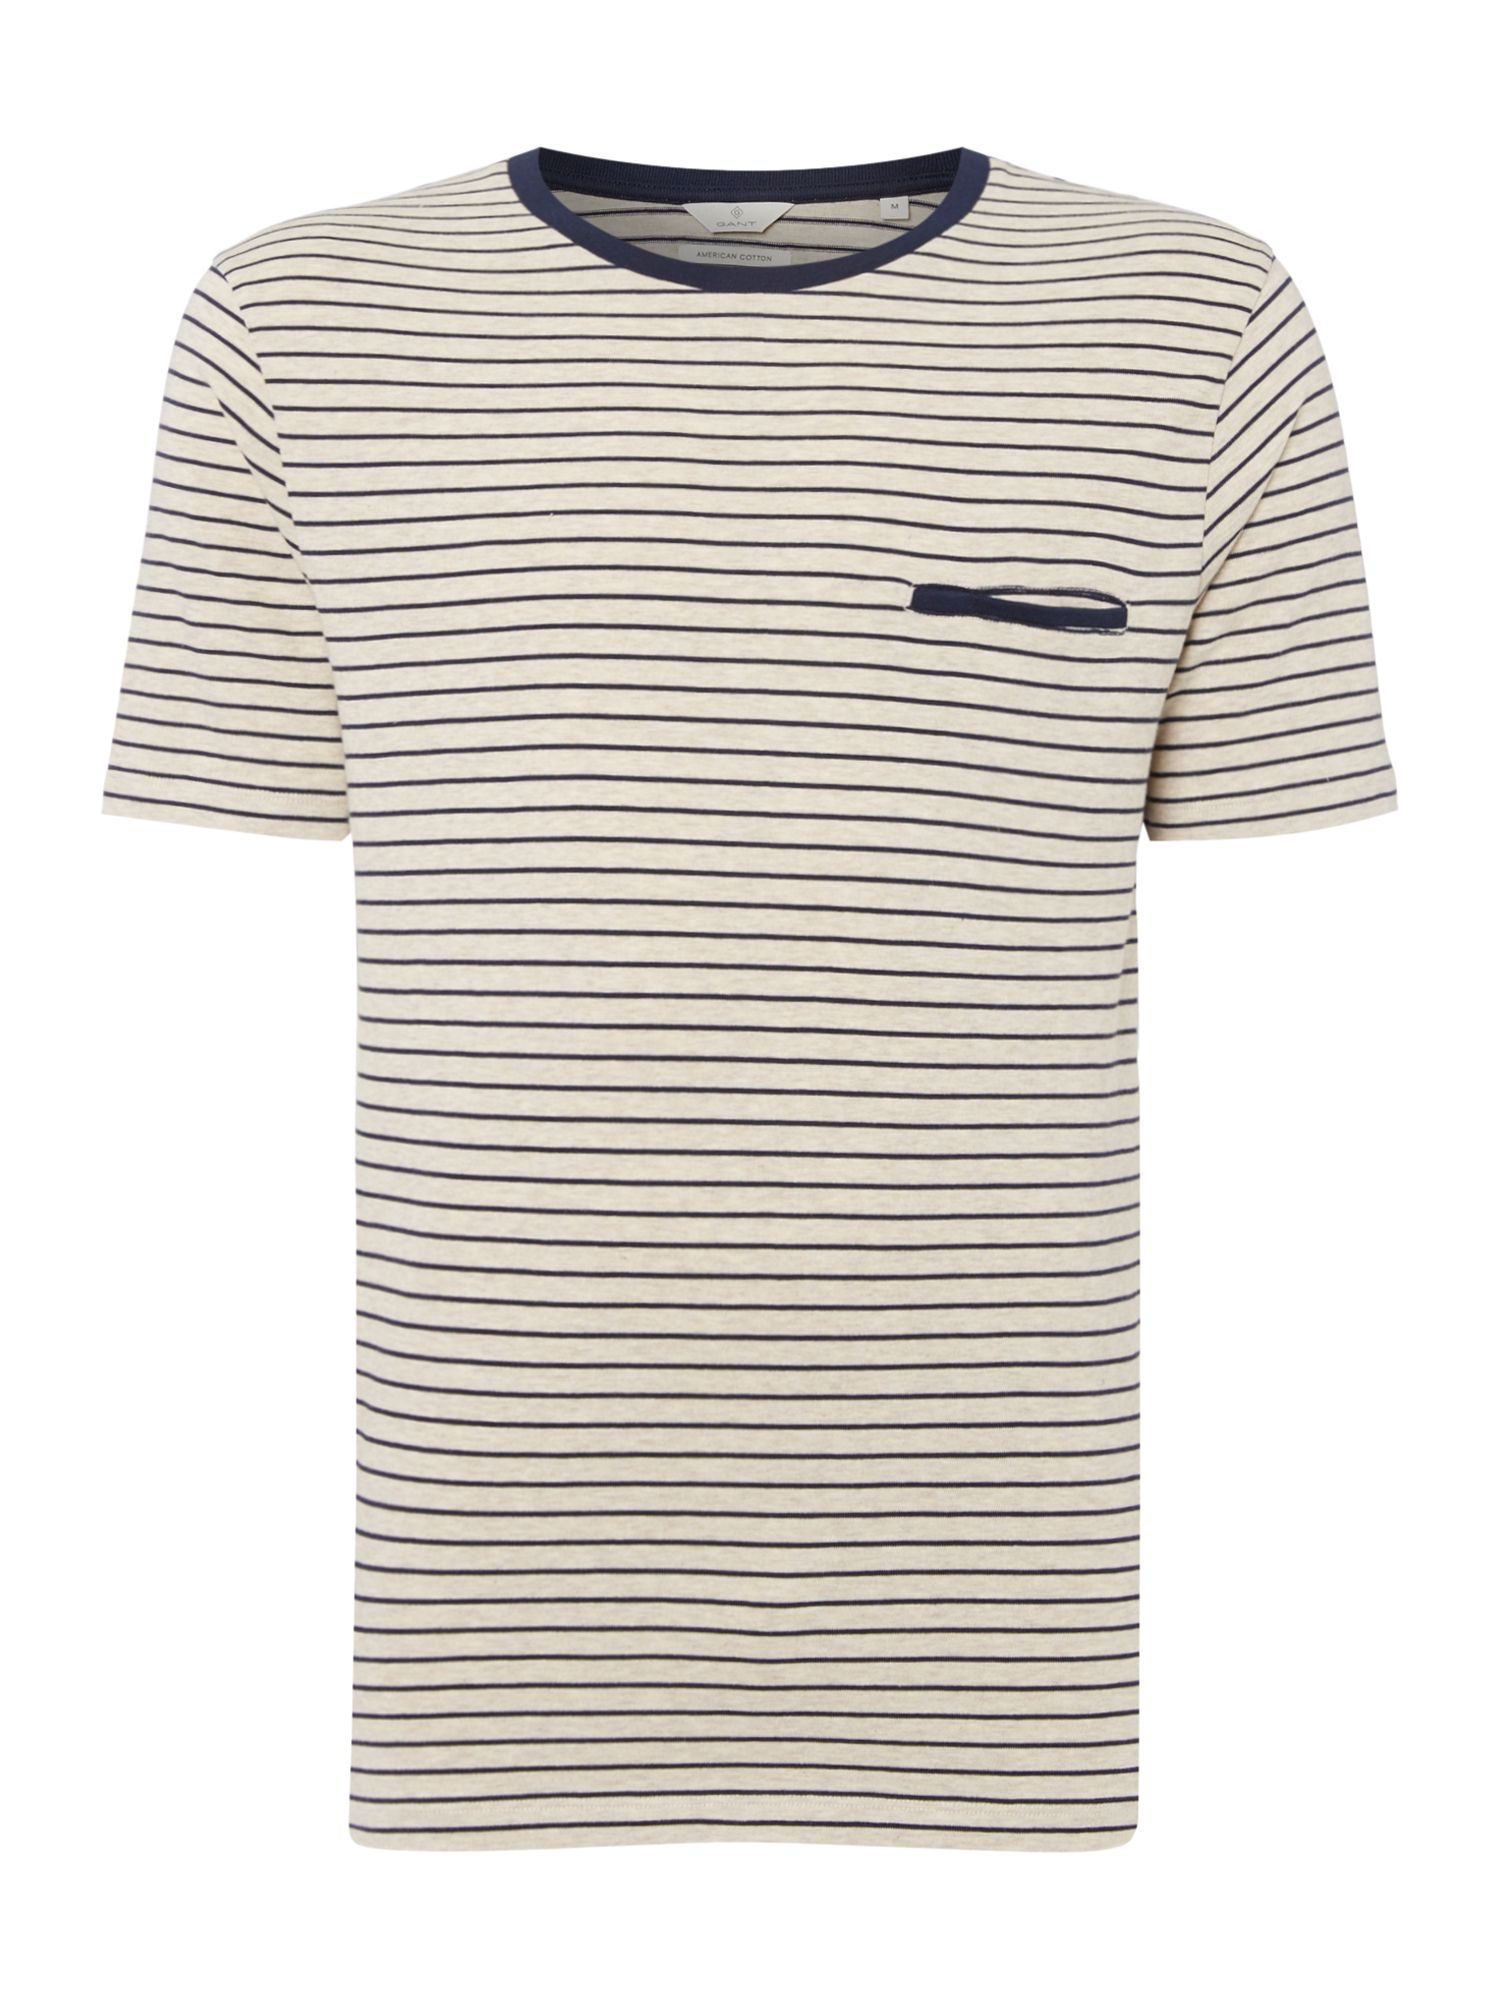 Men's Gant Striped Crew Neck T-Shirt, Grey